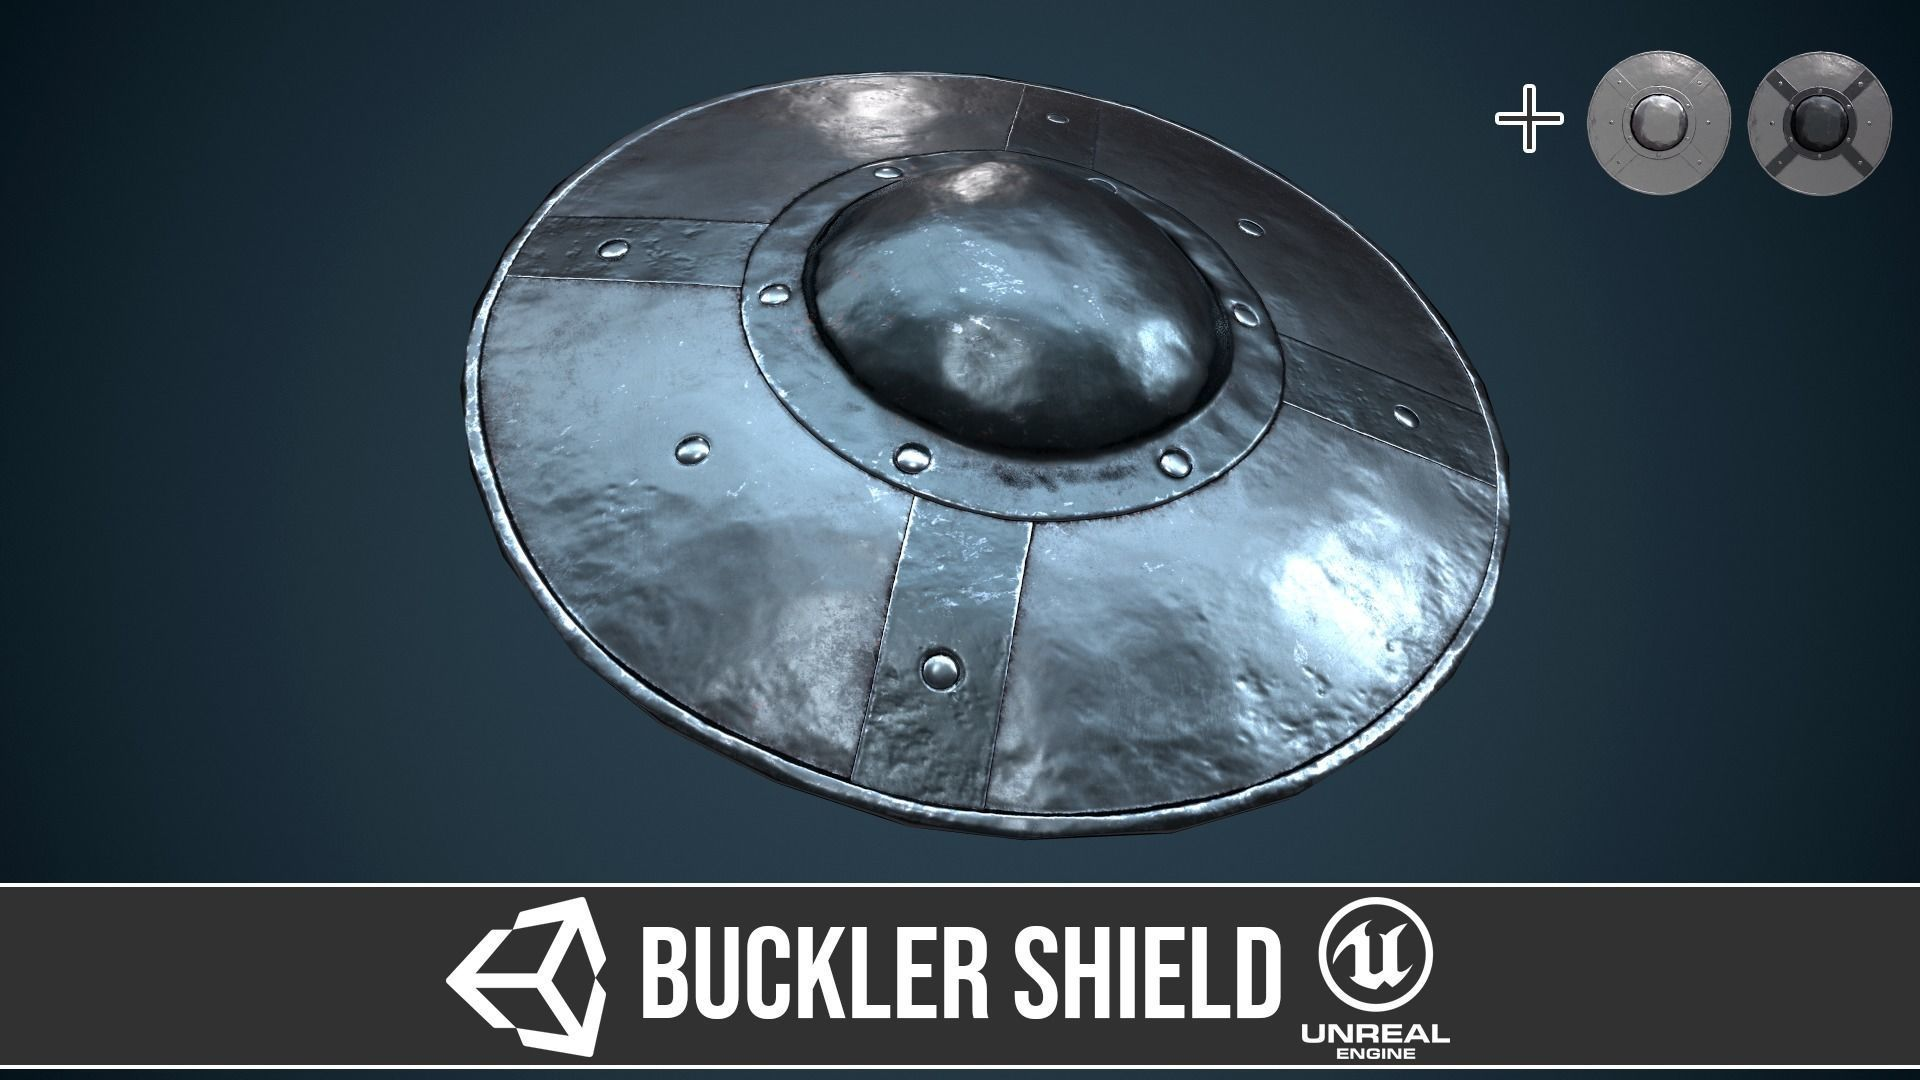 Buckler shield 2